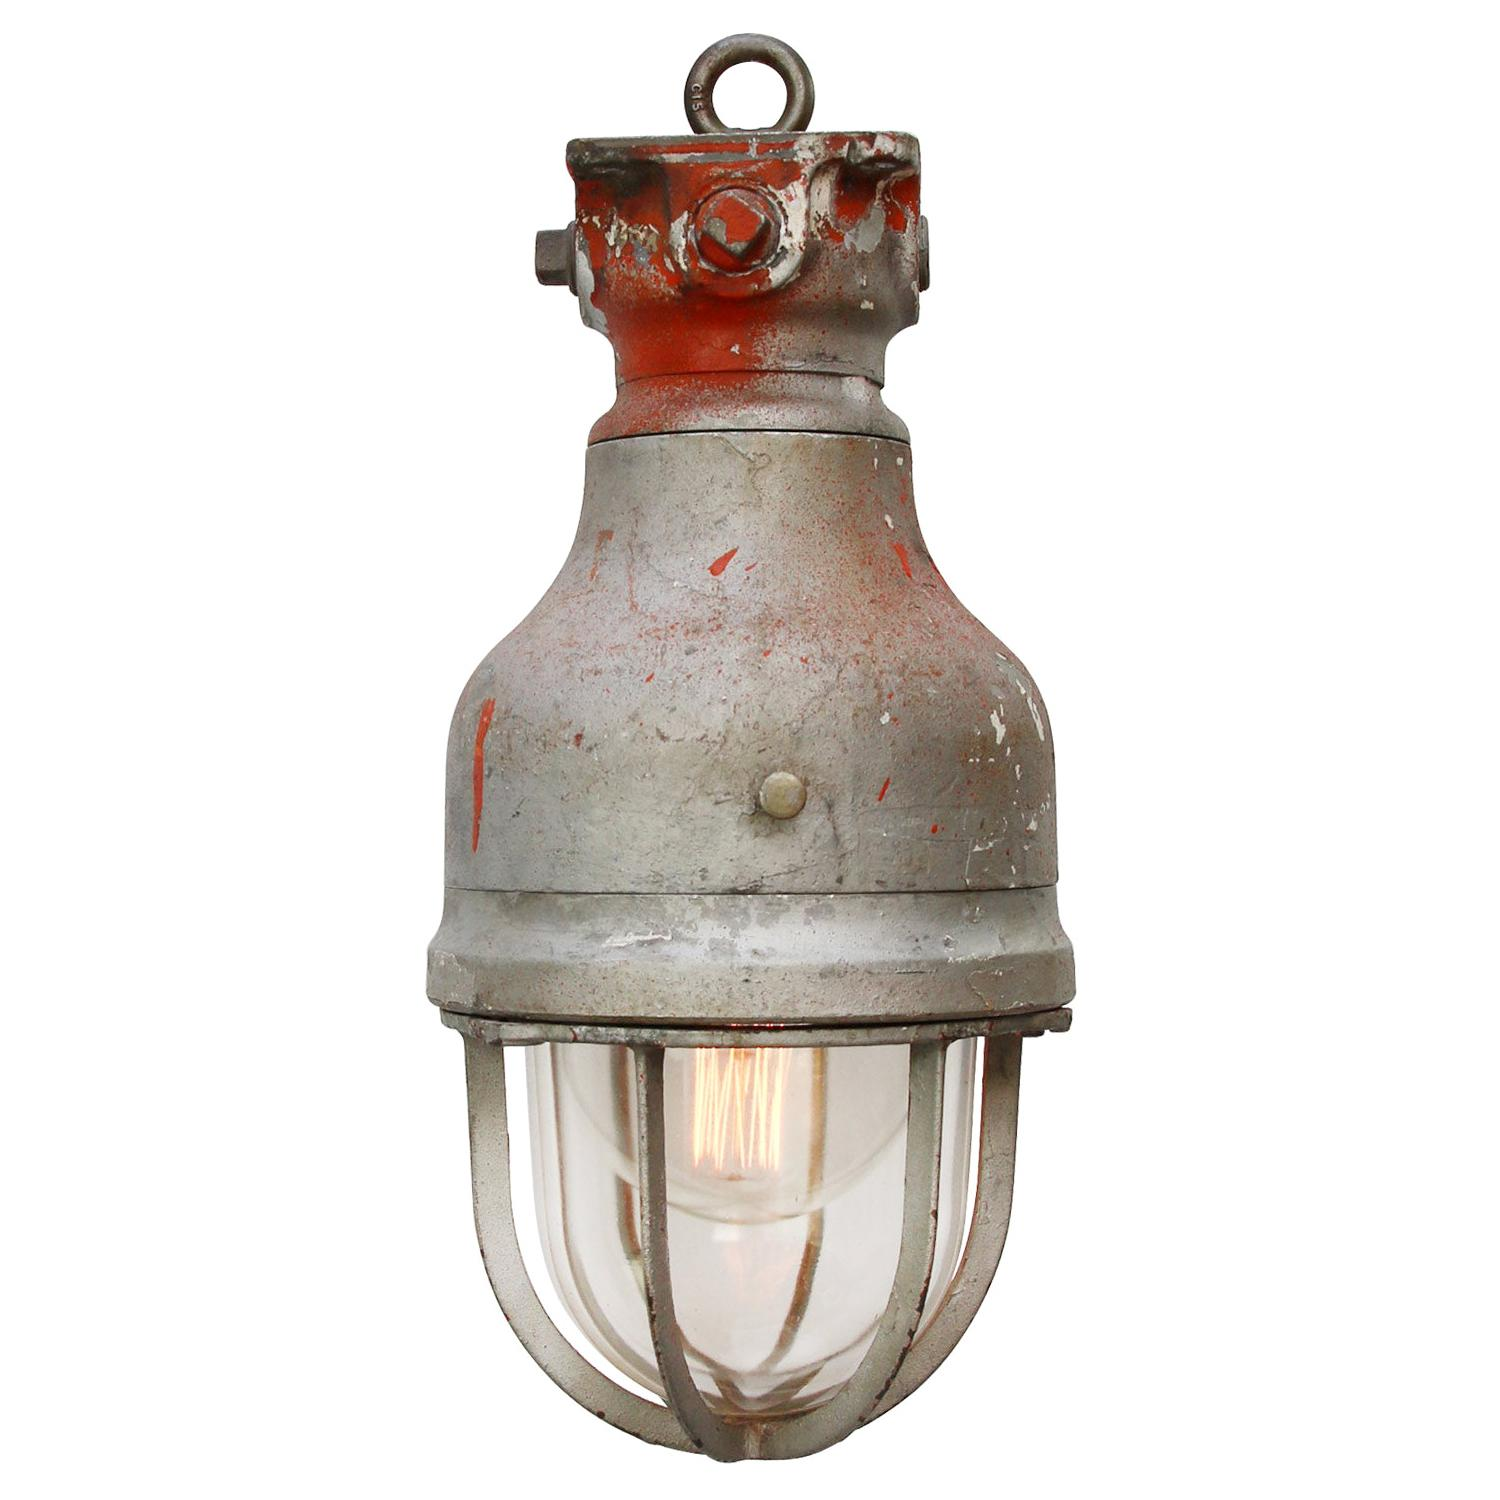 Gray Metal Vintage Industrial Clear Glass Hanging Light by Crouse Hinds